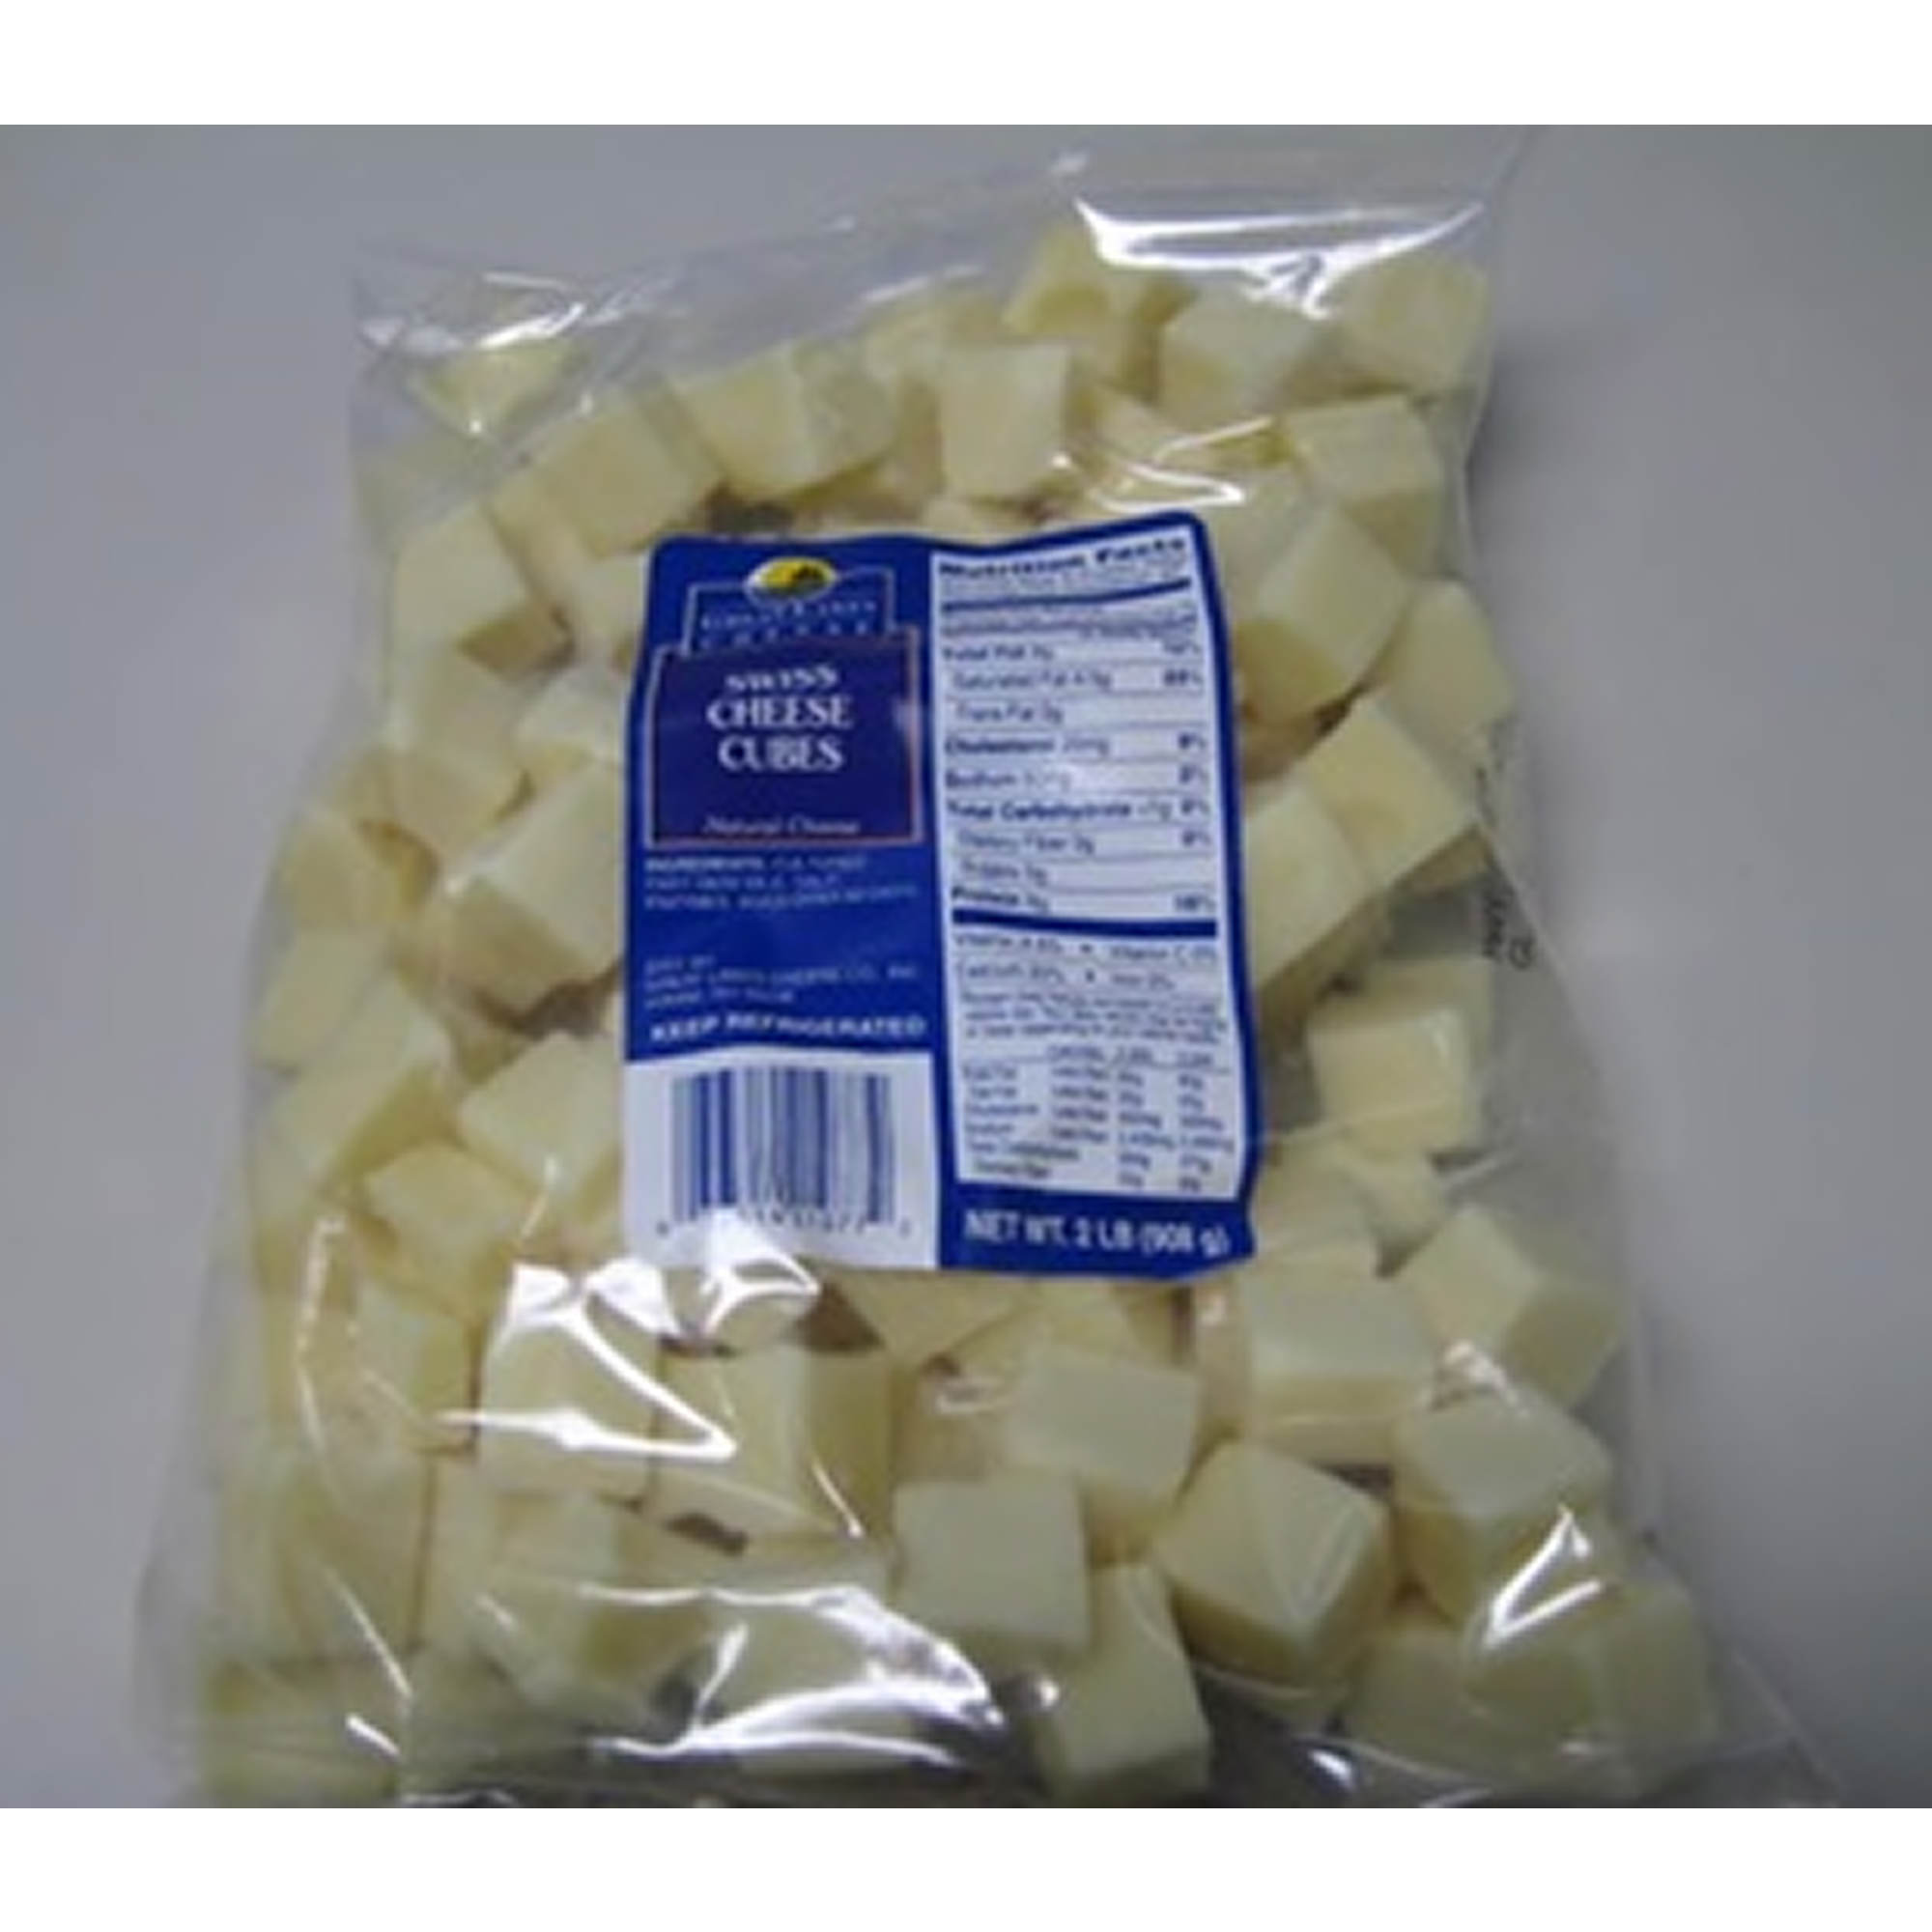 Great Lakes Cheese Swiss Cubes, 2 lbs. - BJ's Wholesale Club